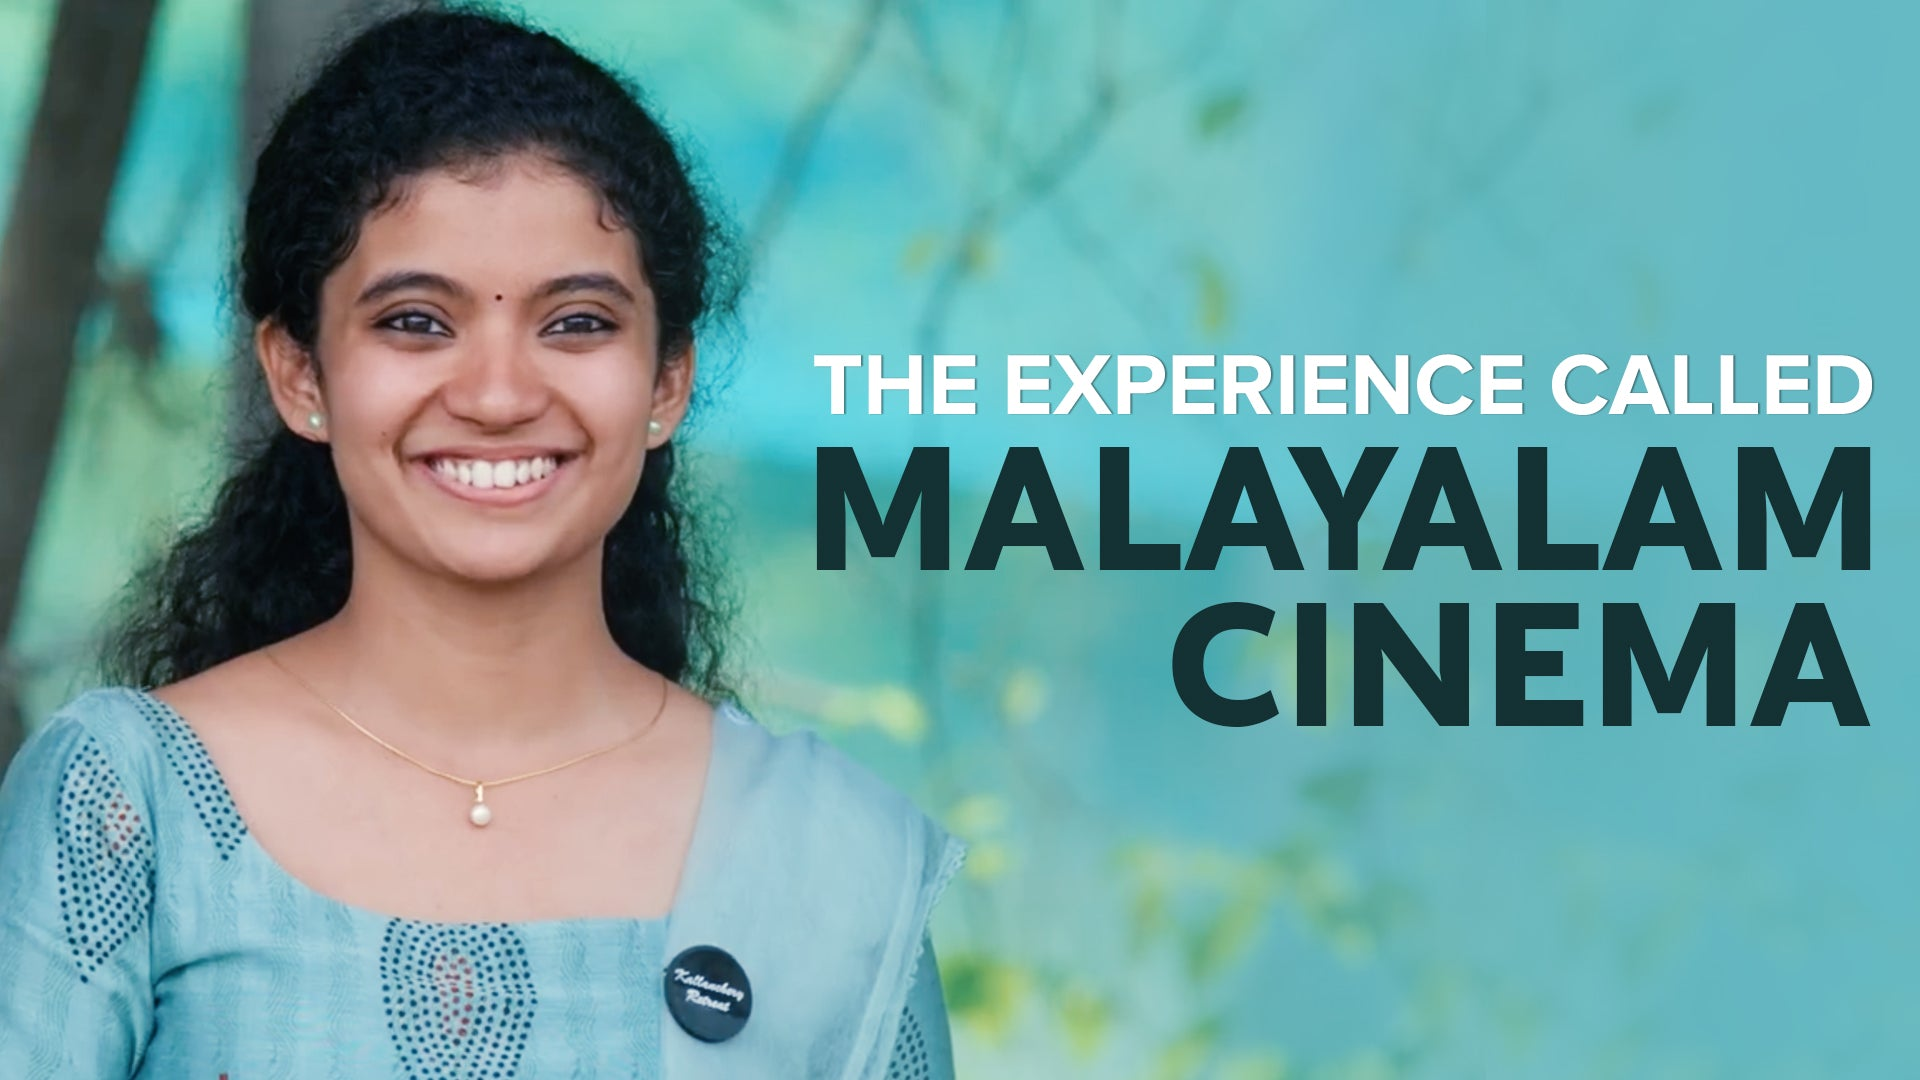 The Experience Called Malayalam Cinema